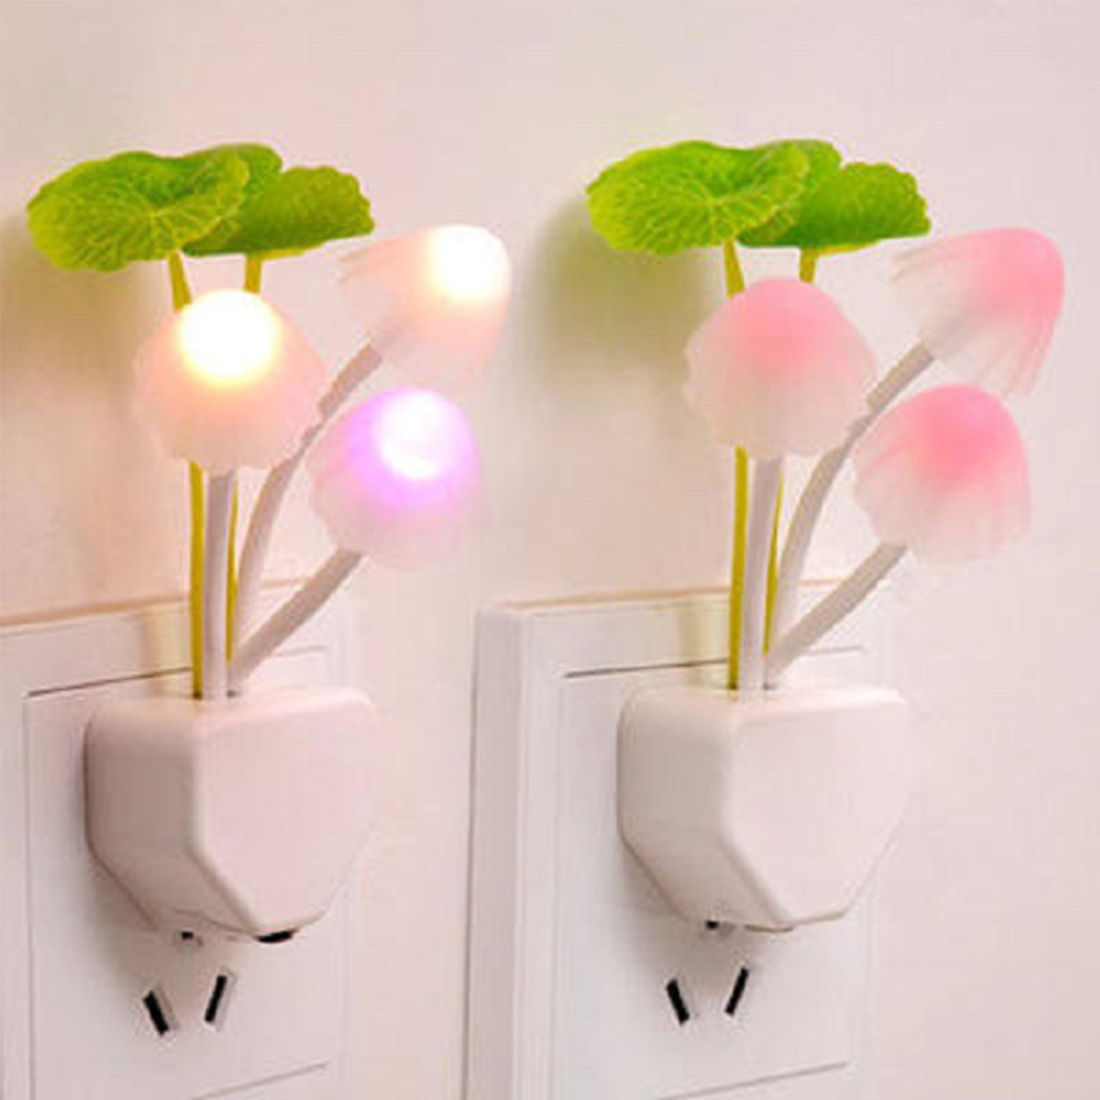 Cute Mushroom Fungus Night Light 220V 3 LED EU & US Plug Light Sensor Colorful Lamp Led Night Lights Home Decor For Children